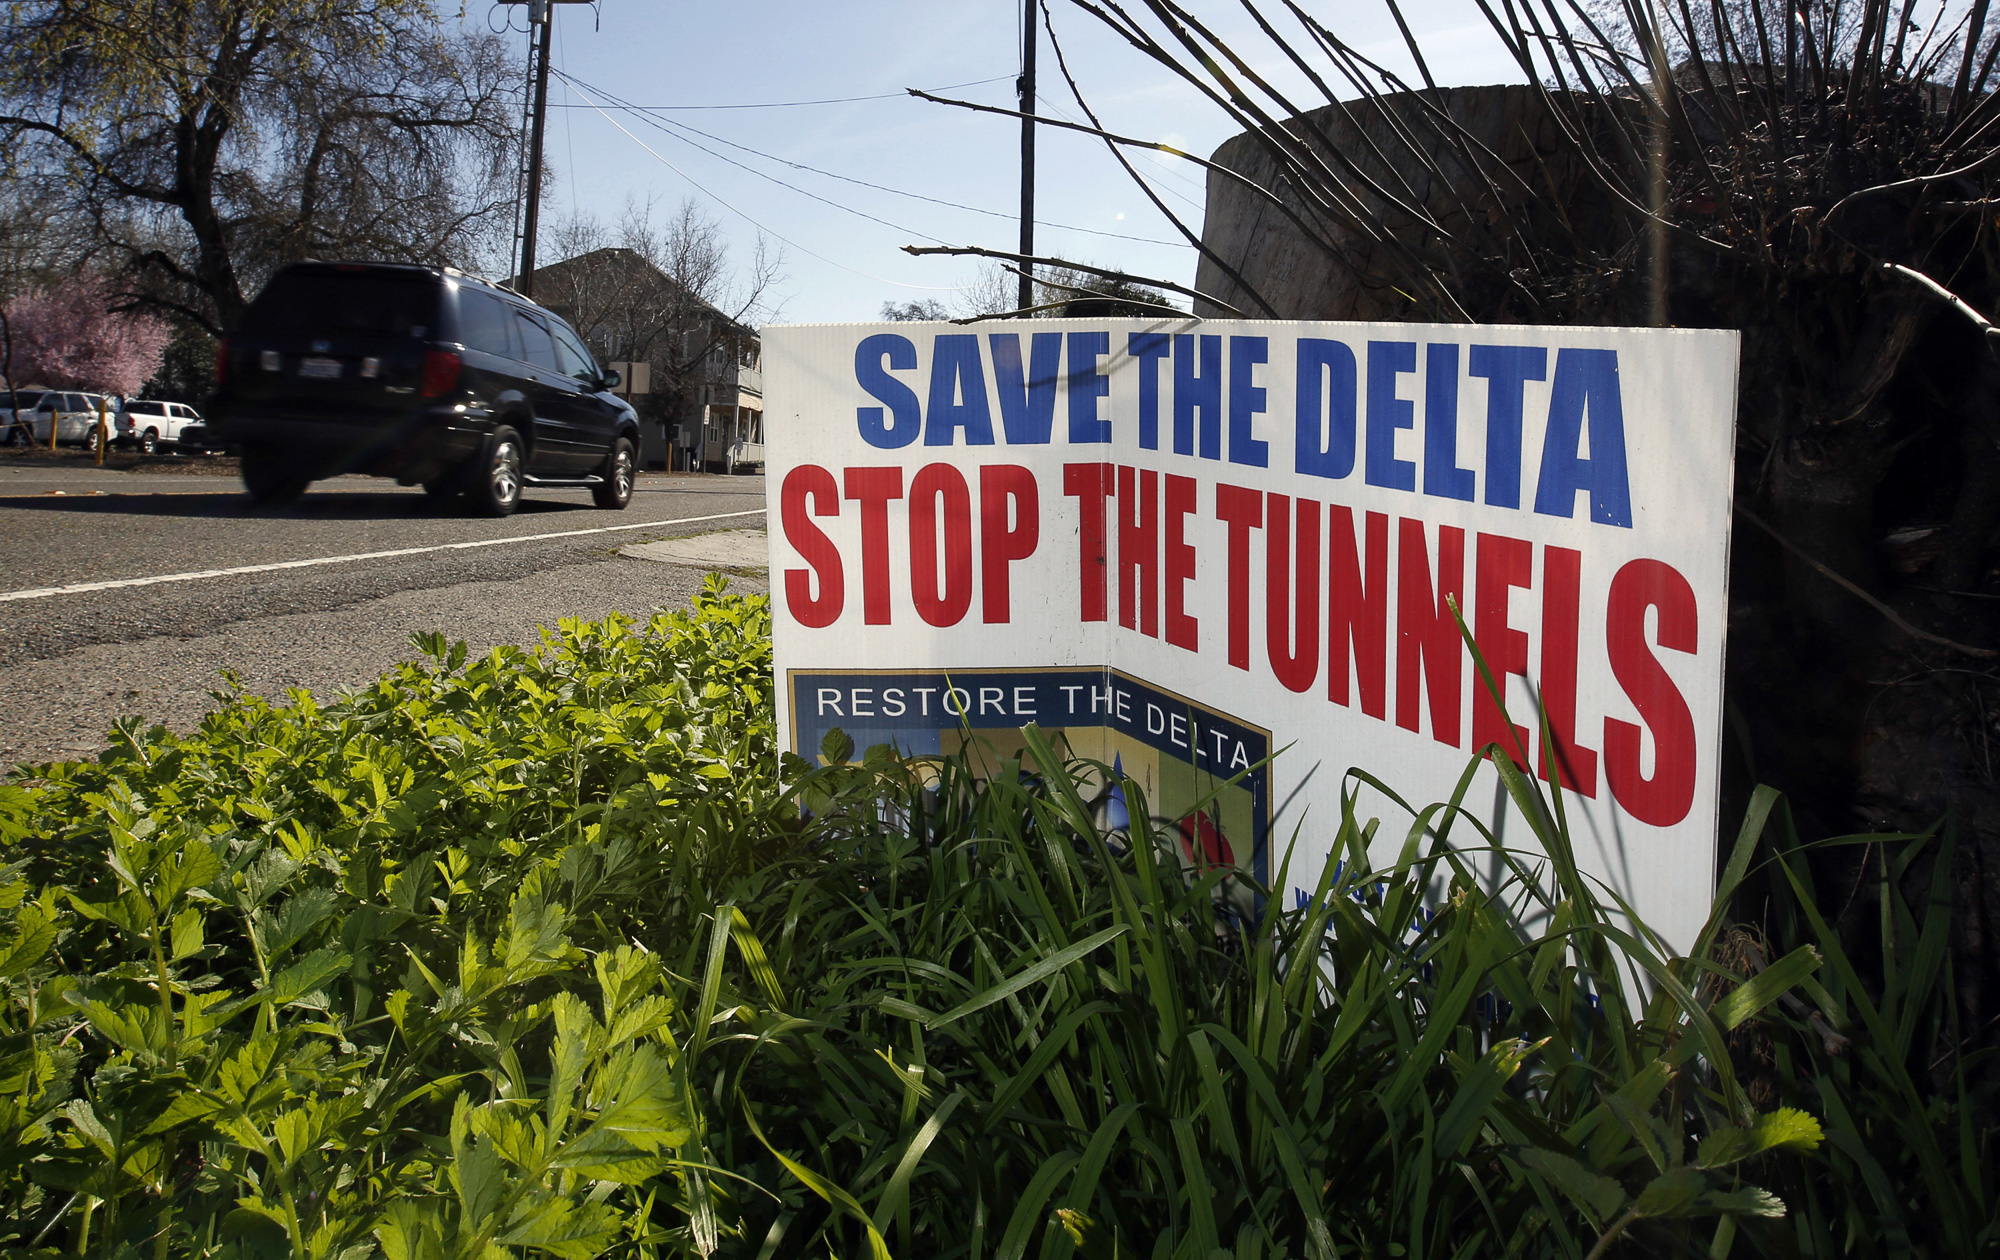 In this Feb. 23, 2016 file photo a sign opposing a proposed plan by Gov. Jerry Brown to build two giant tunnels to ship water through the Sacramento-San Joaquin Delta to Southern California is displayed near Freeport, Calif. Gov. Gavin Newsom officially abandoned his predecessor's plan, Thursday, May 2, 2019, opting instead for just one, smaller tunnel. Photo by Rich Pedroncelli, AP Photo